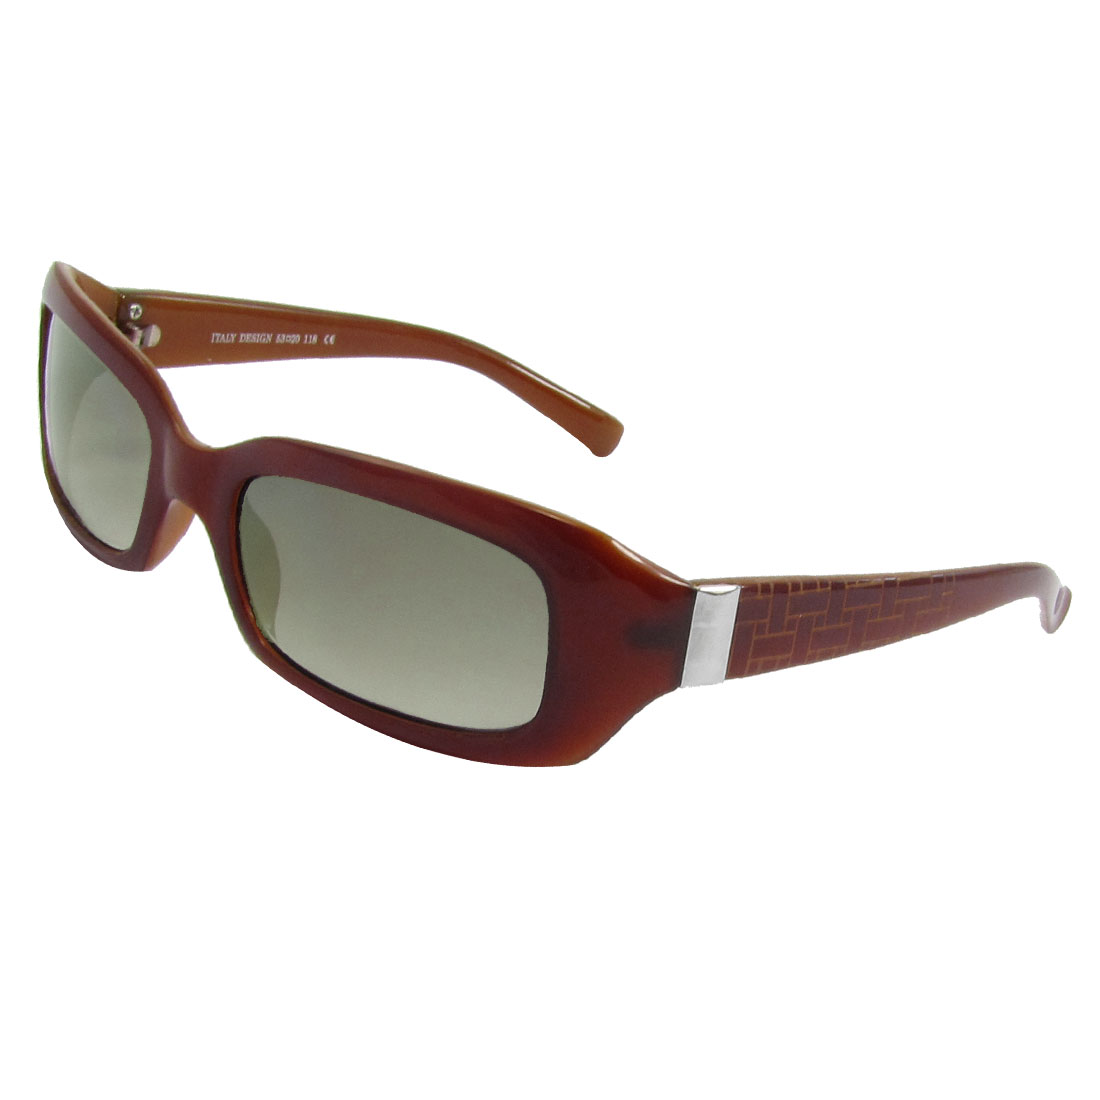 Wall Pattern Wide Temple Brown Plastic Rimmed Sunglasses Eyeglasses for Woman